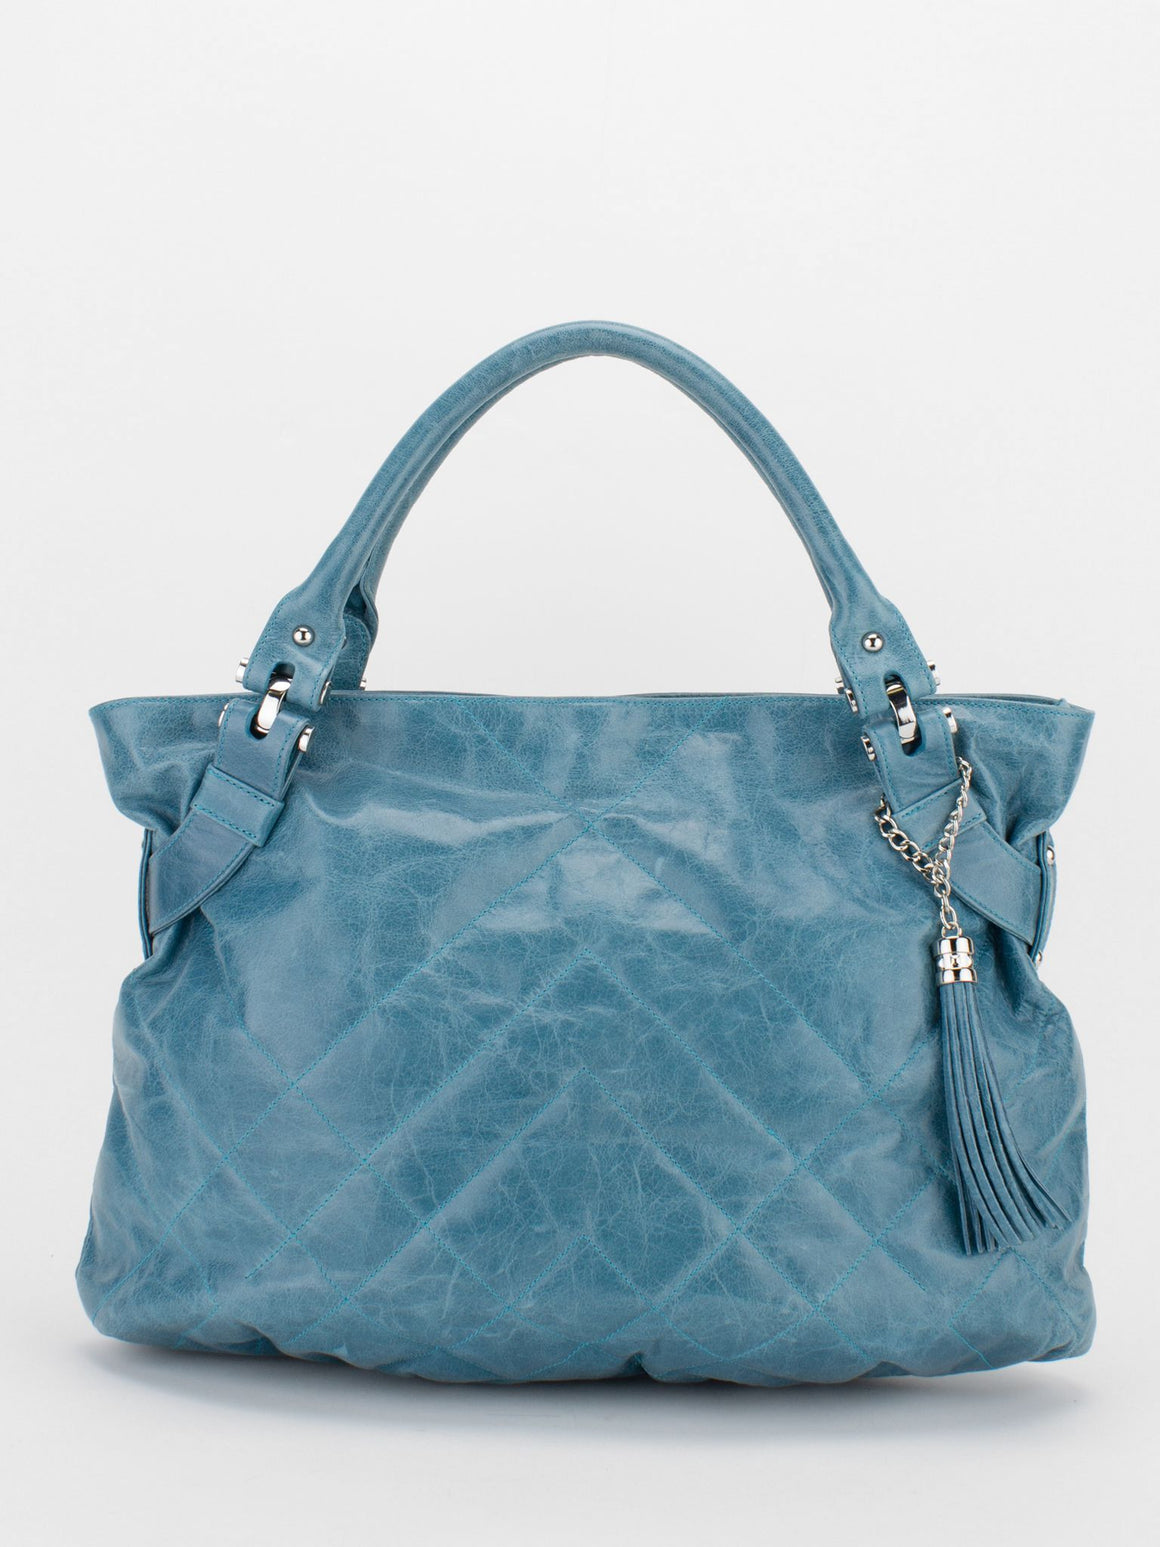 CAROL Glazed Leather Shoulder Bag - Blue